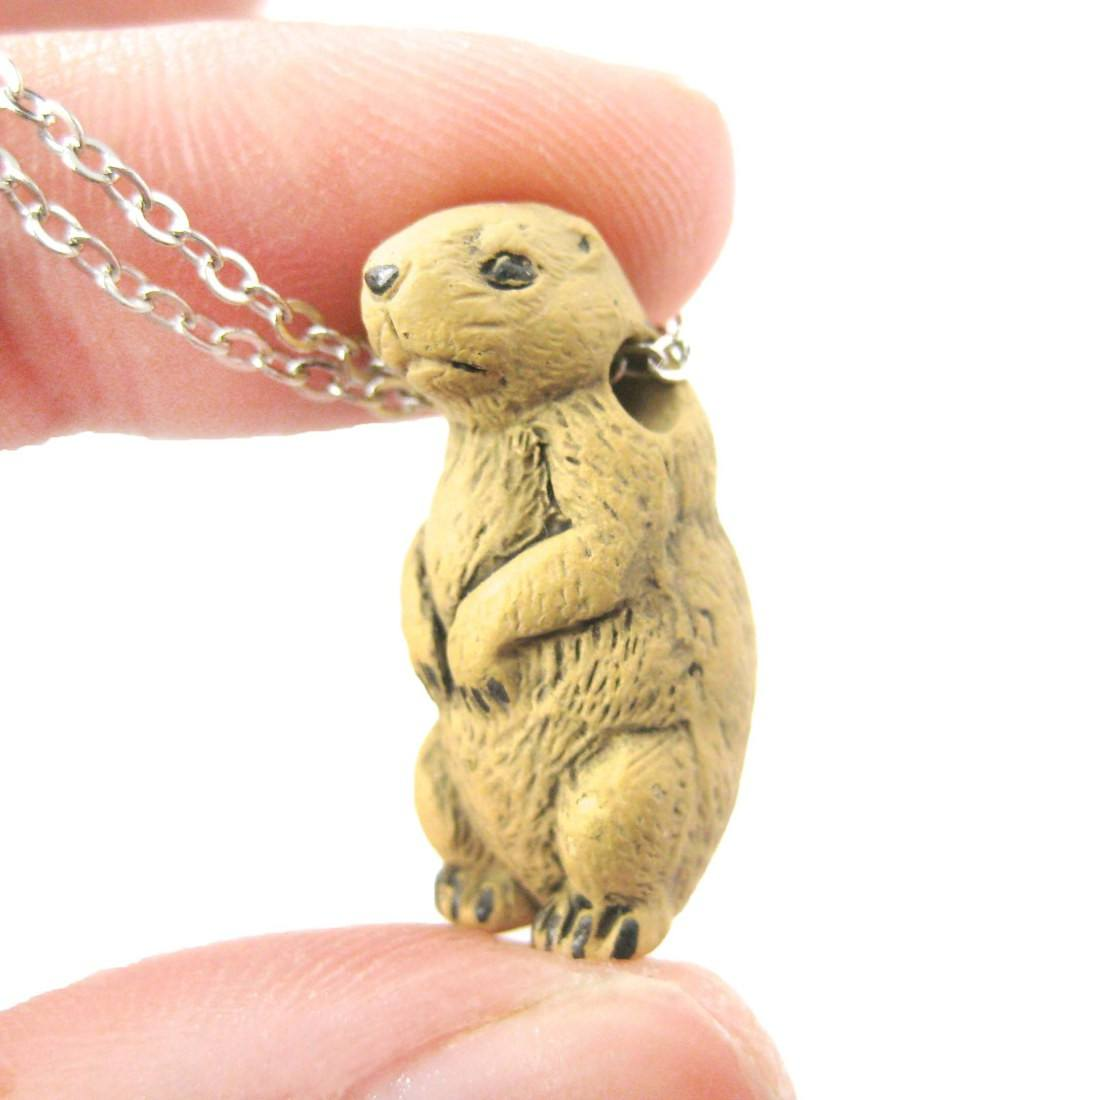 Realistic Prairie Dog Ceramic Animal Pendant Necklace | Handmade